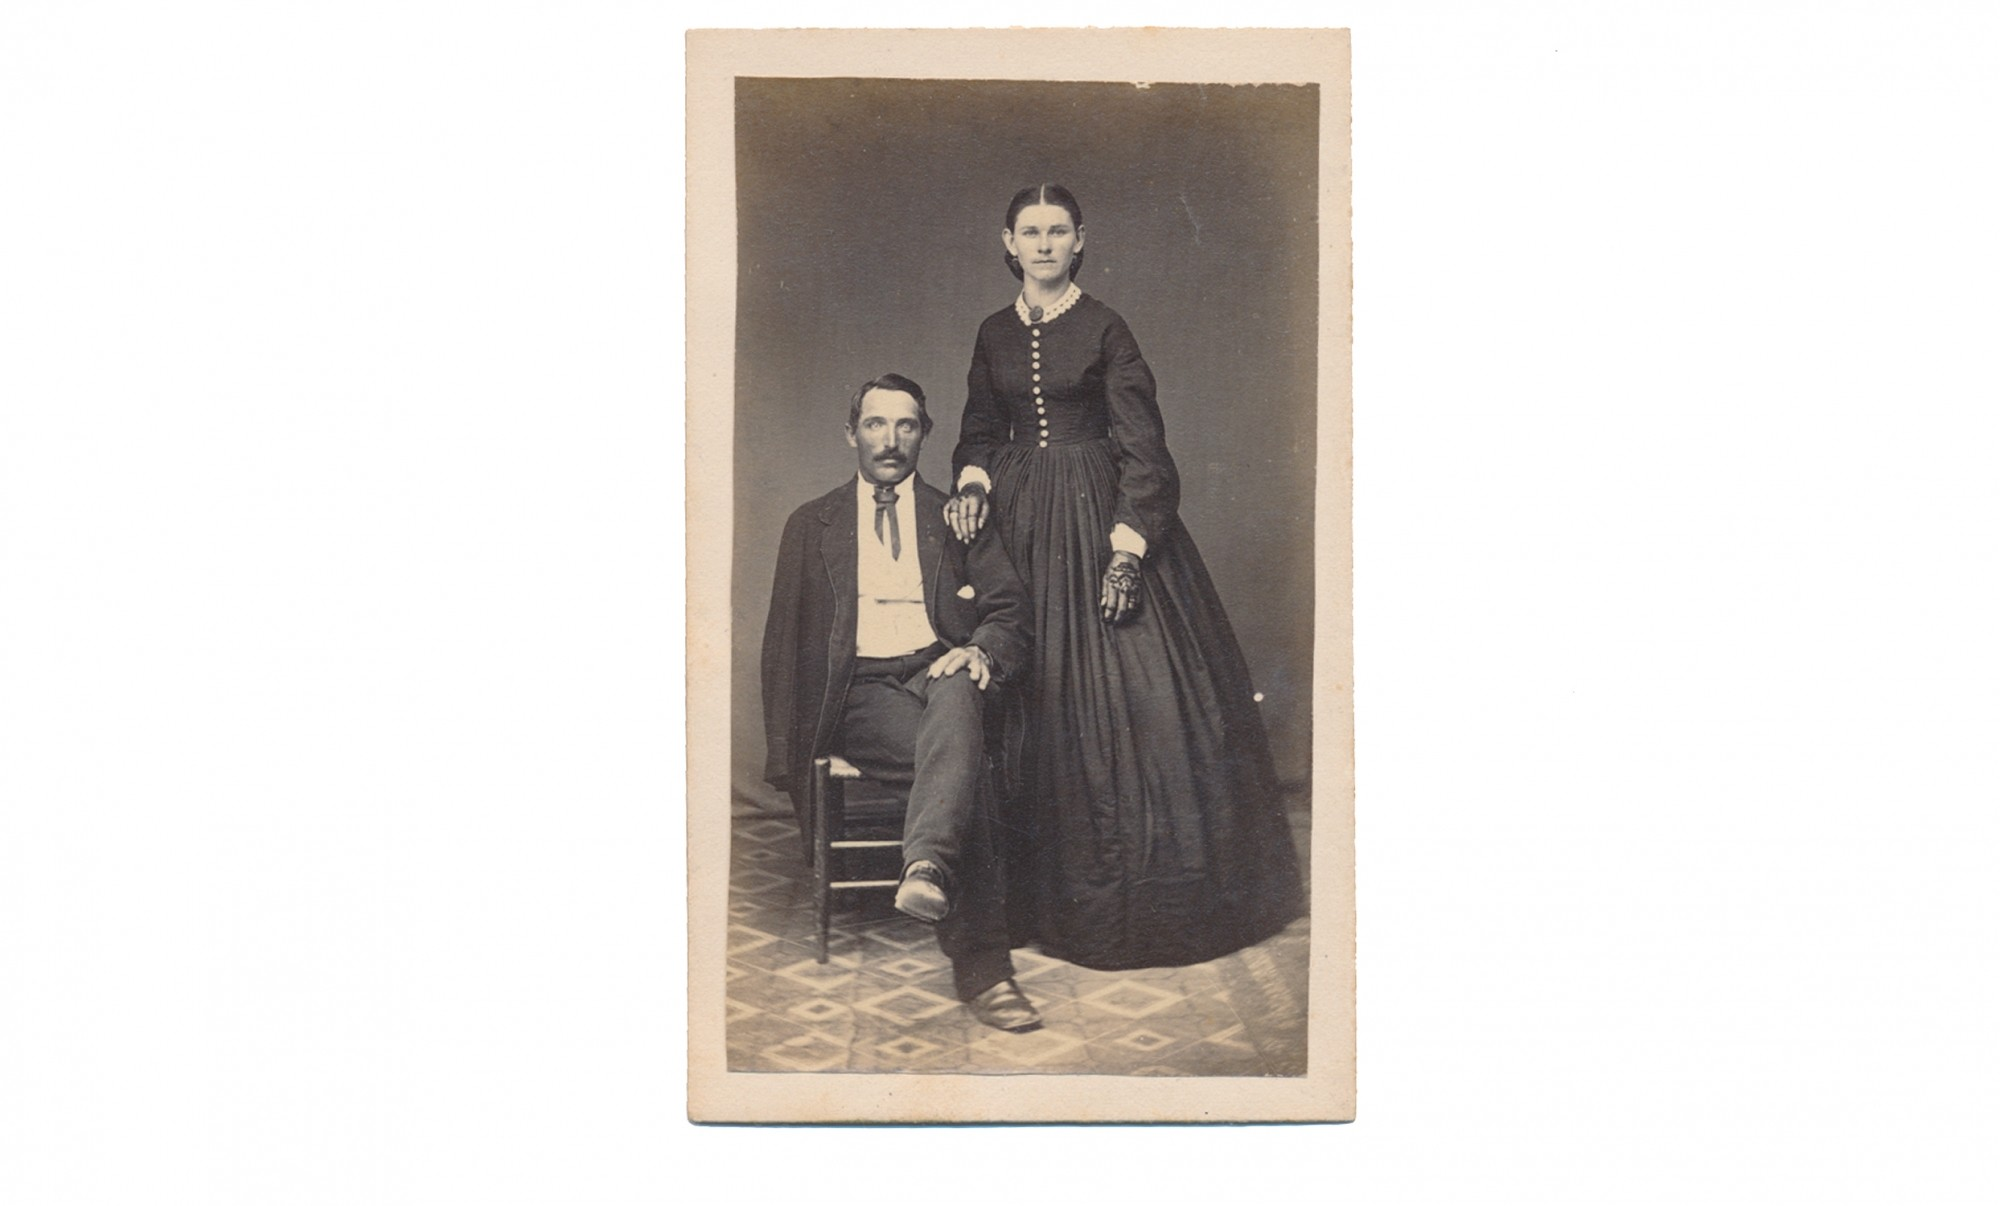 CDV OF AMPUTEE MAN AND WOMAN